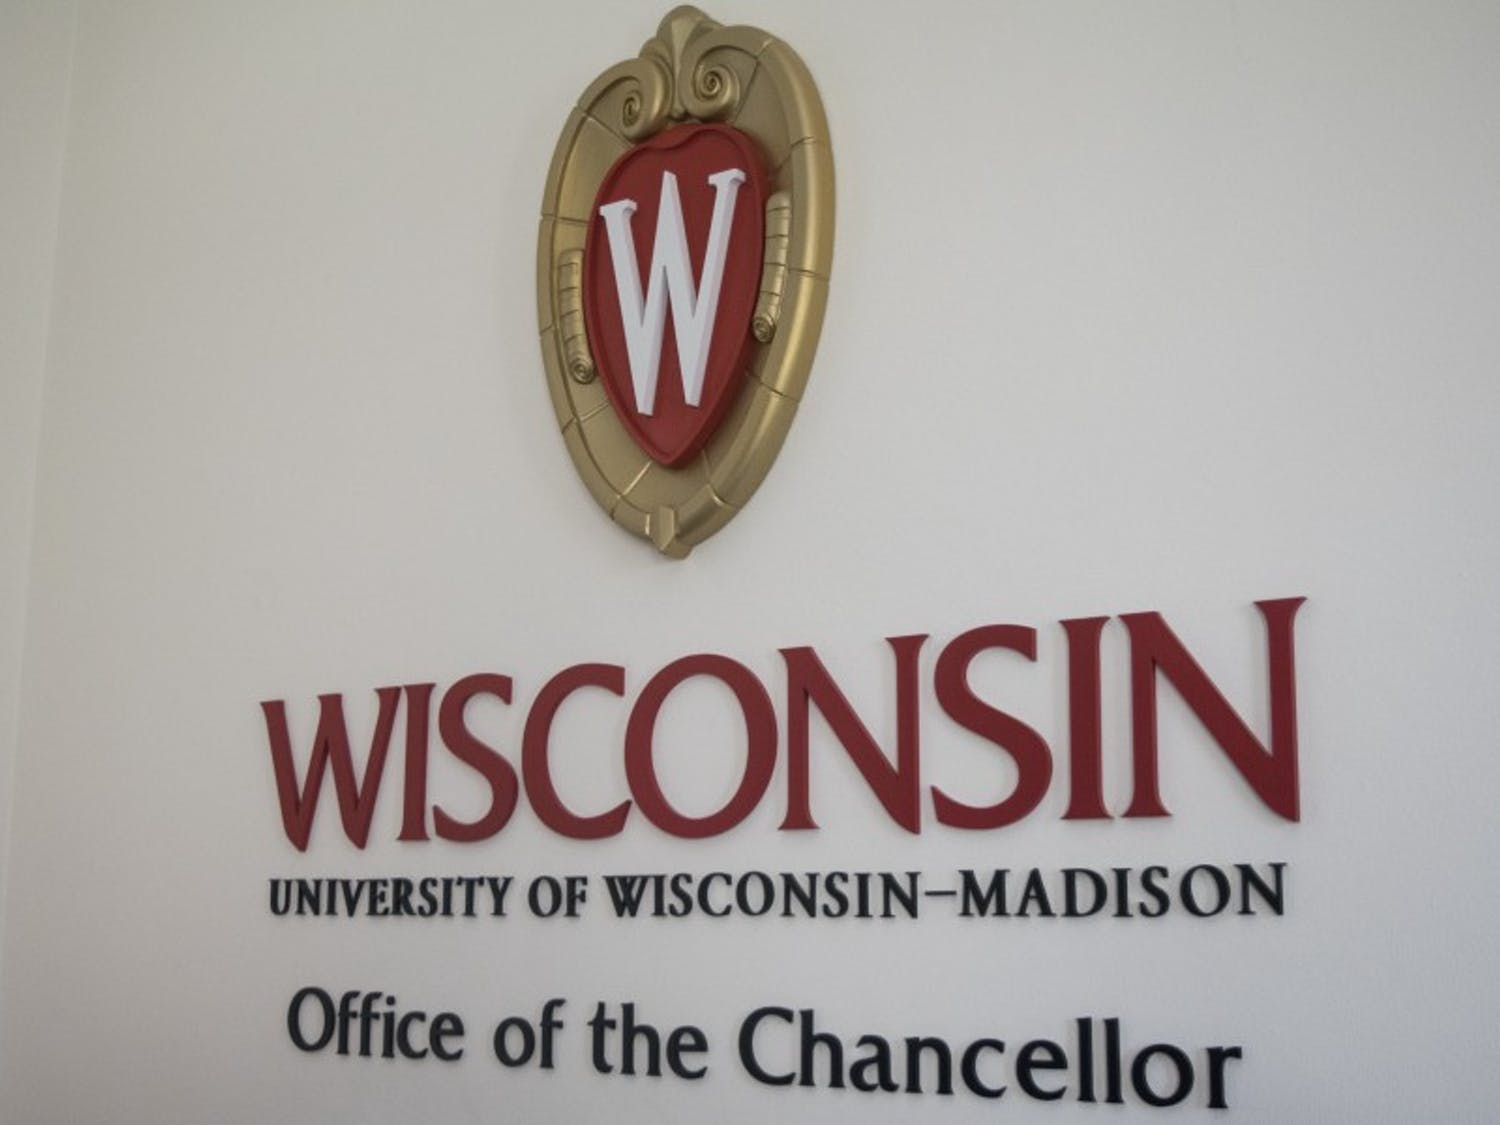 A blog post from the Office of the Chancellor sparked contention among Taiwanese students at UW-Madison.